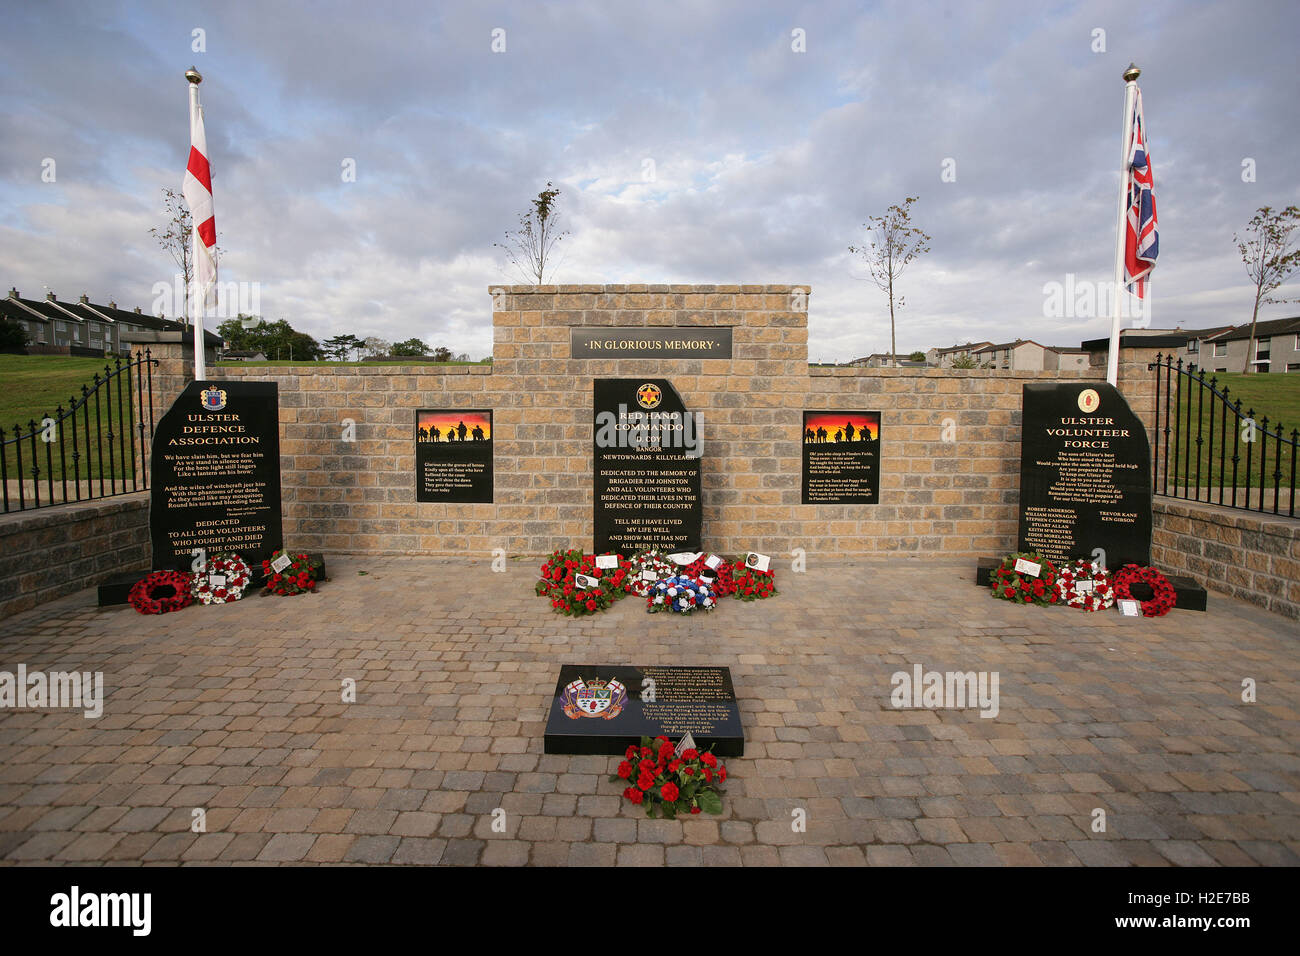 The controversial Garden of Reflection memorial in the Loyalist ...